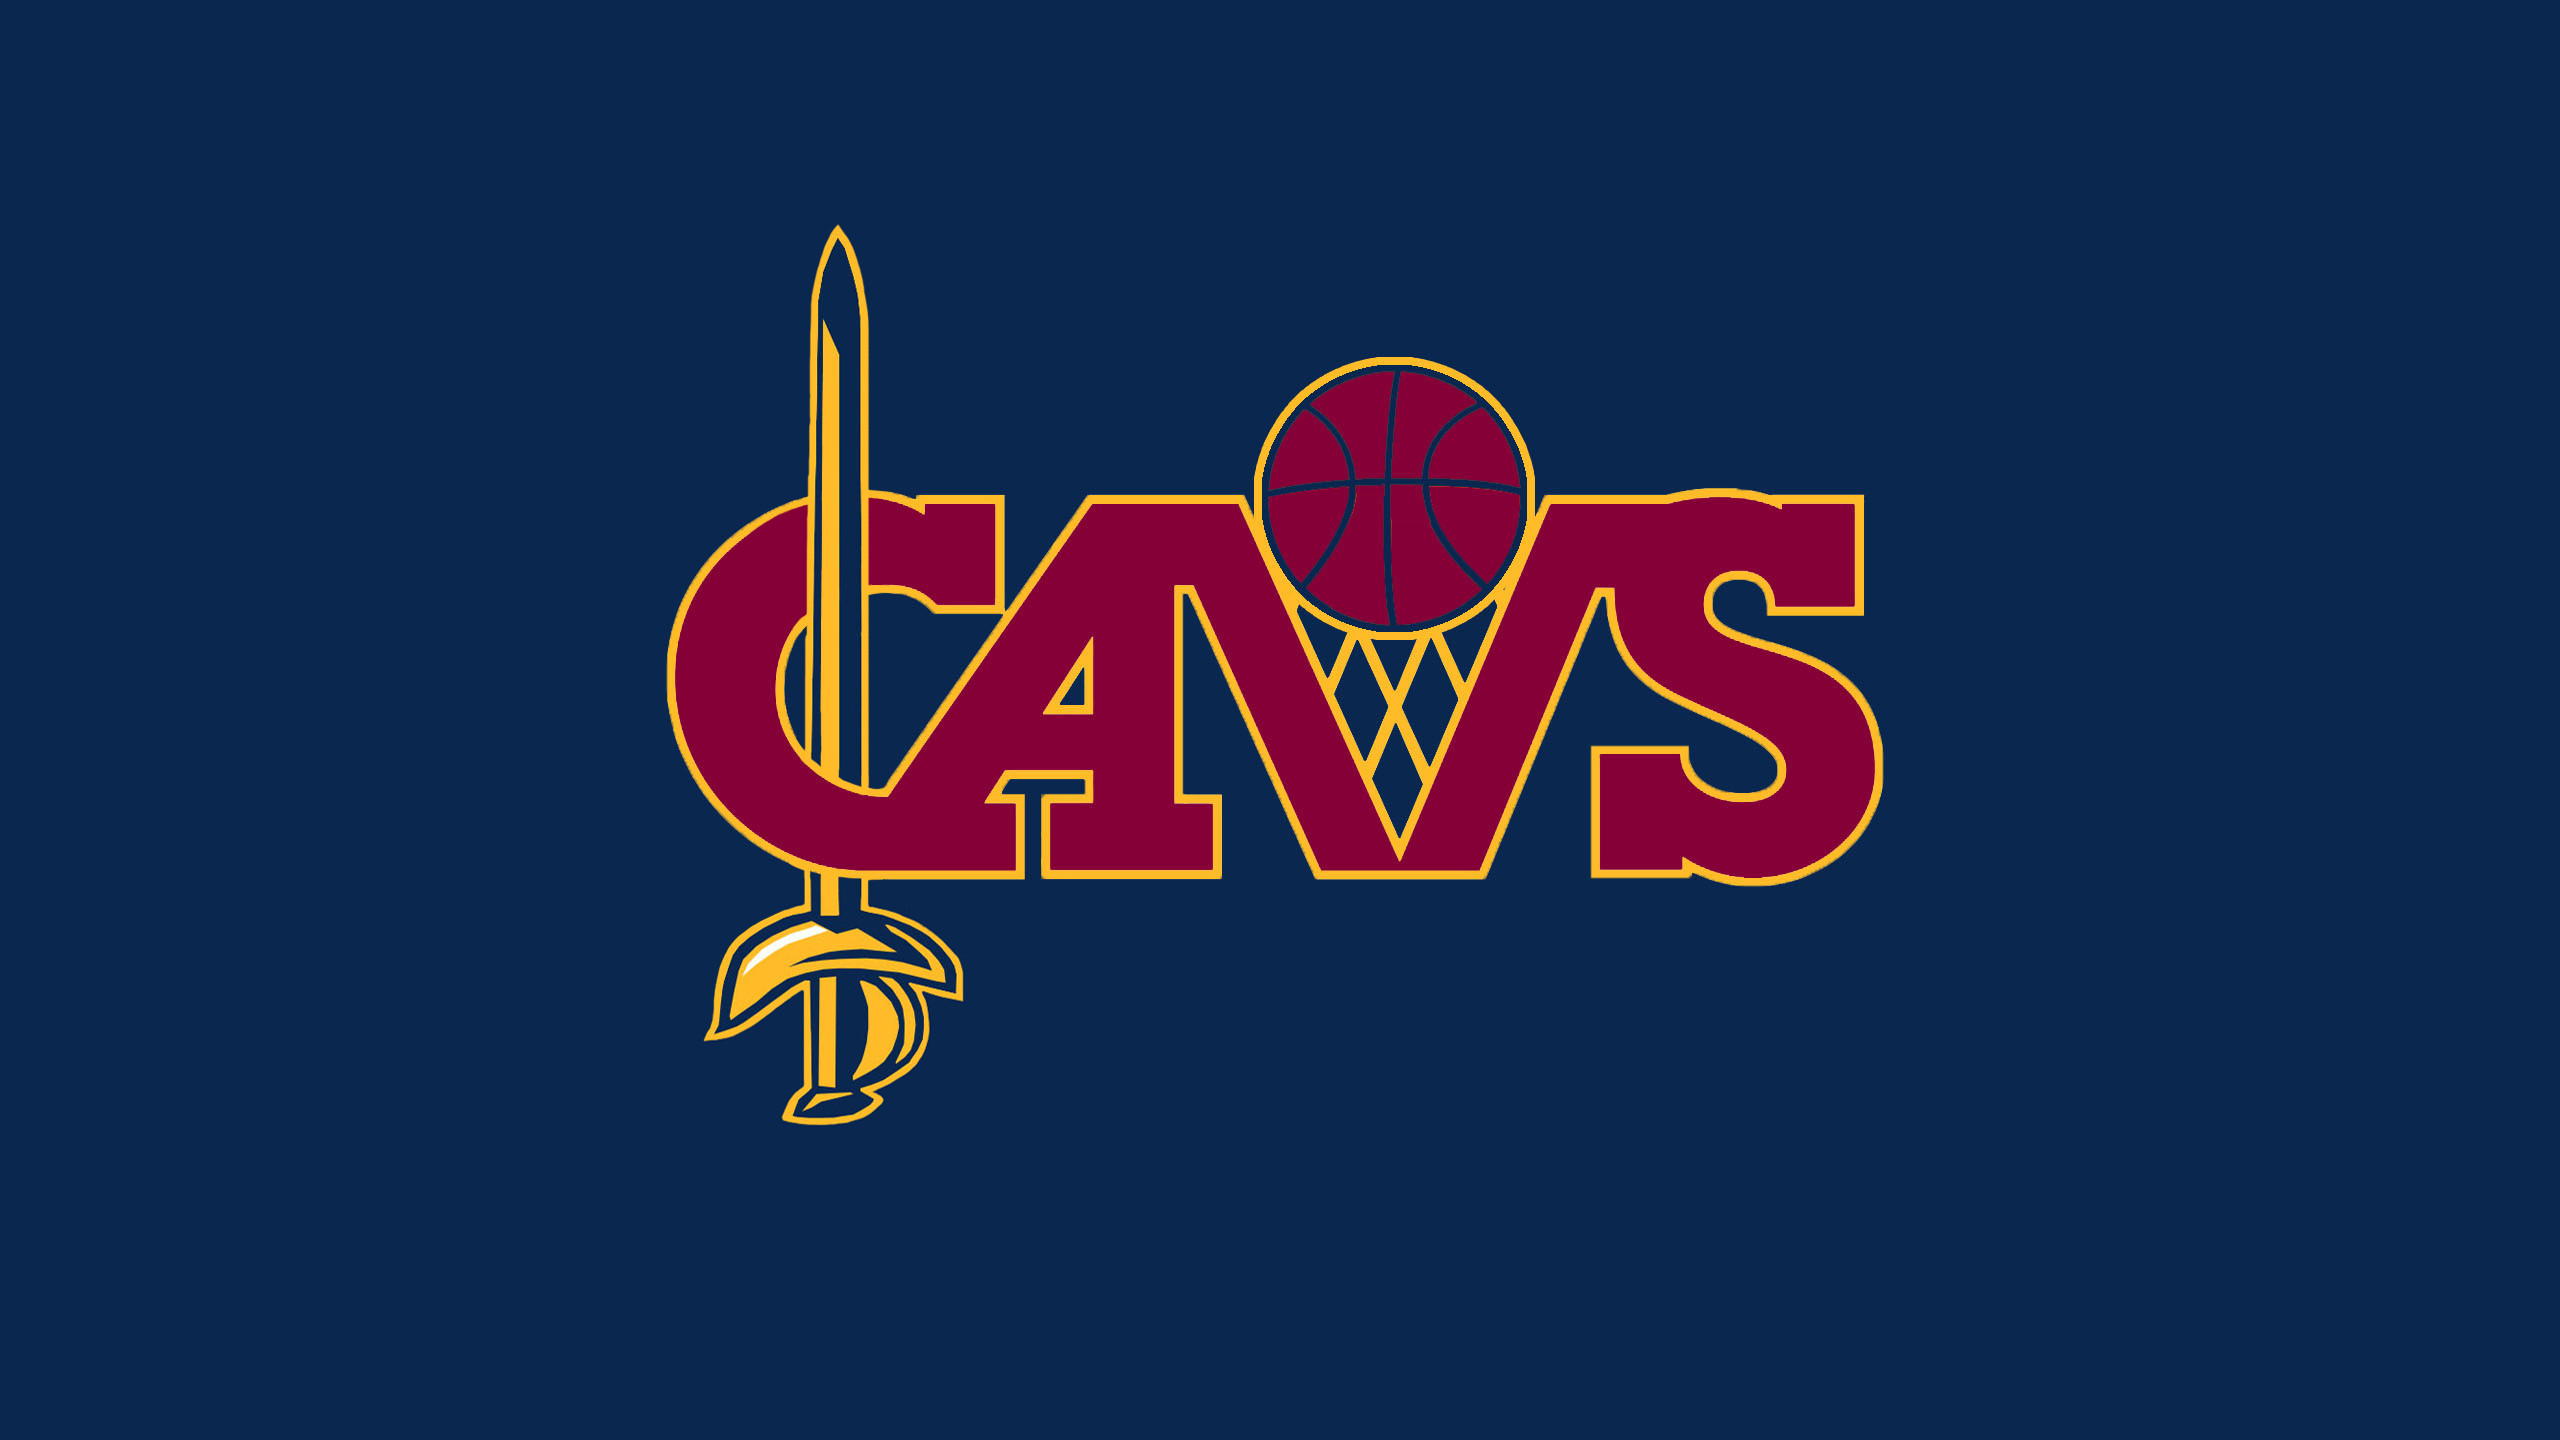 Cleveland Cavaliers Logo Wallpaper >> Cavaliers Logo Wallpapers (80+ images)